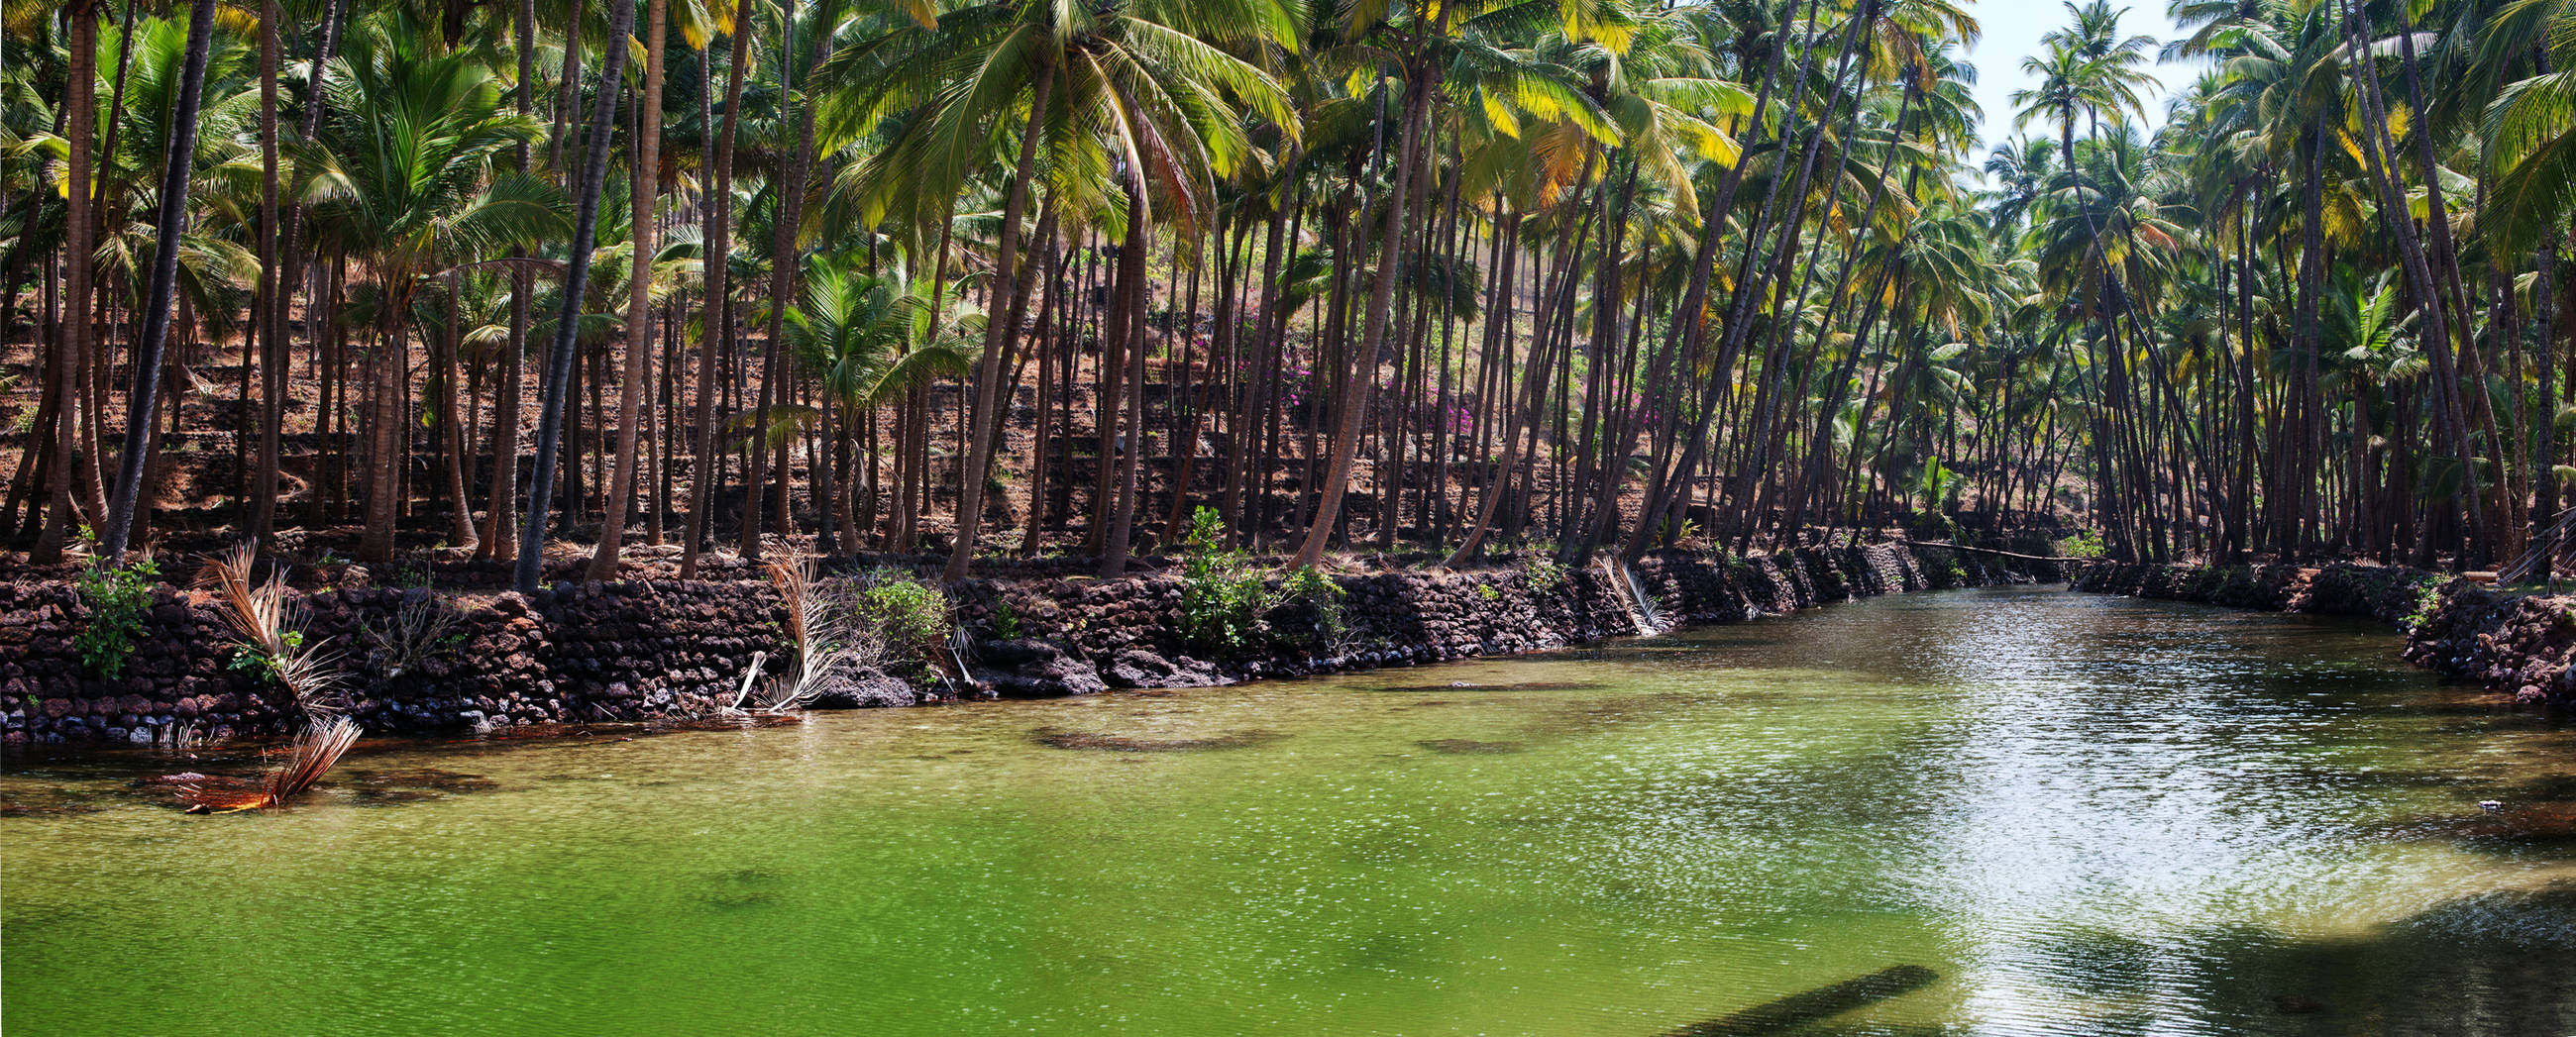 expat-guide-goa-river